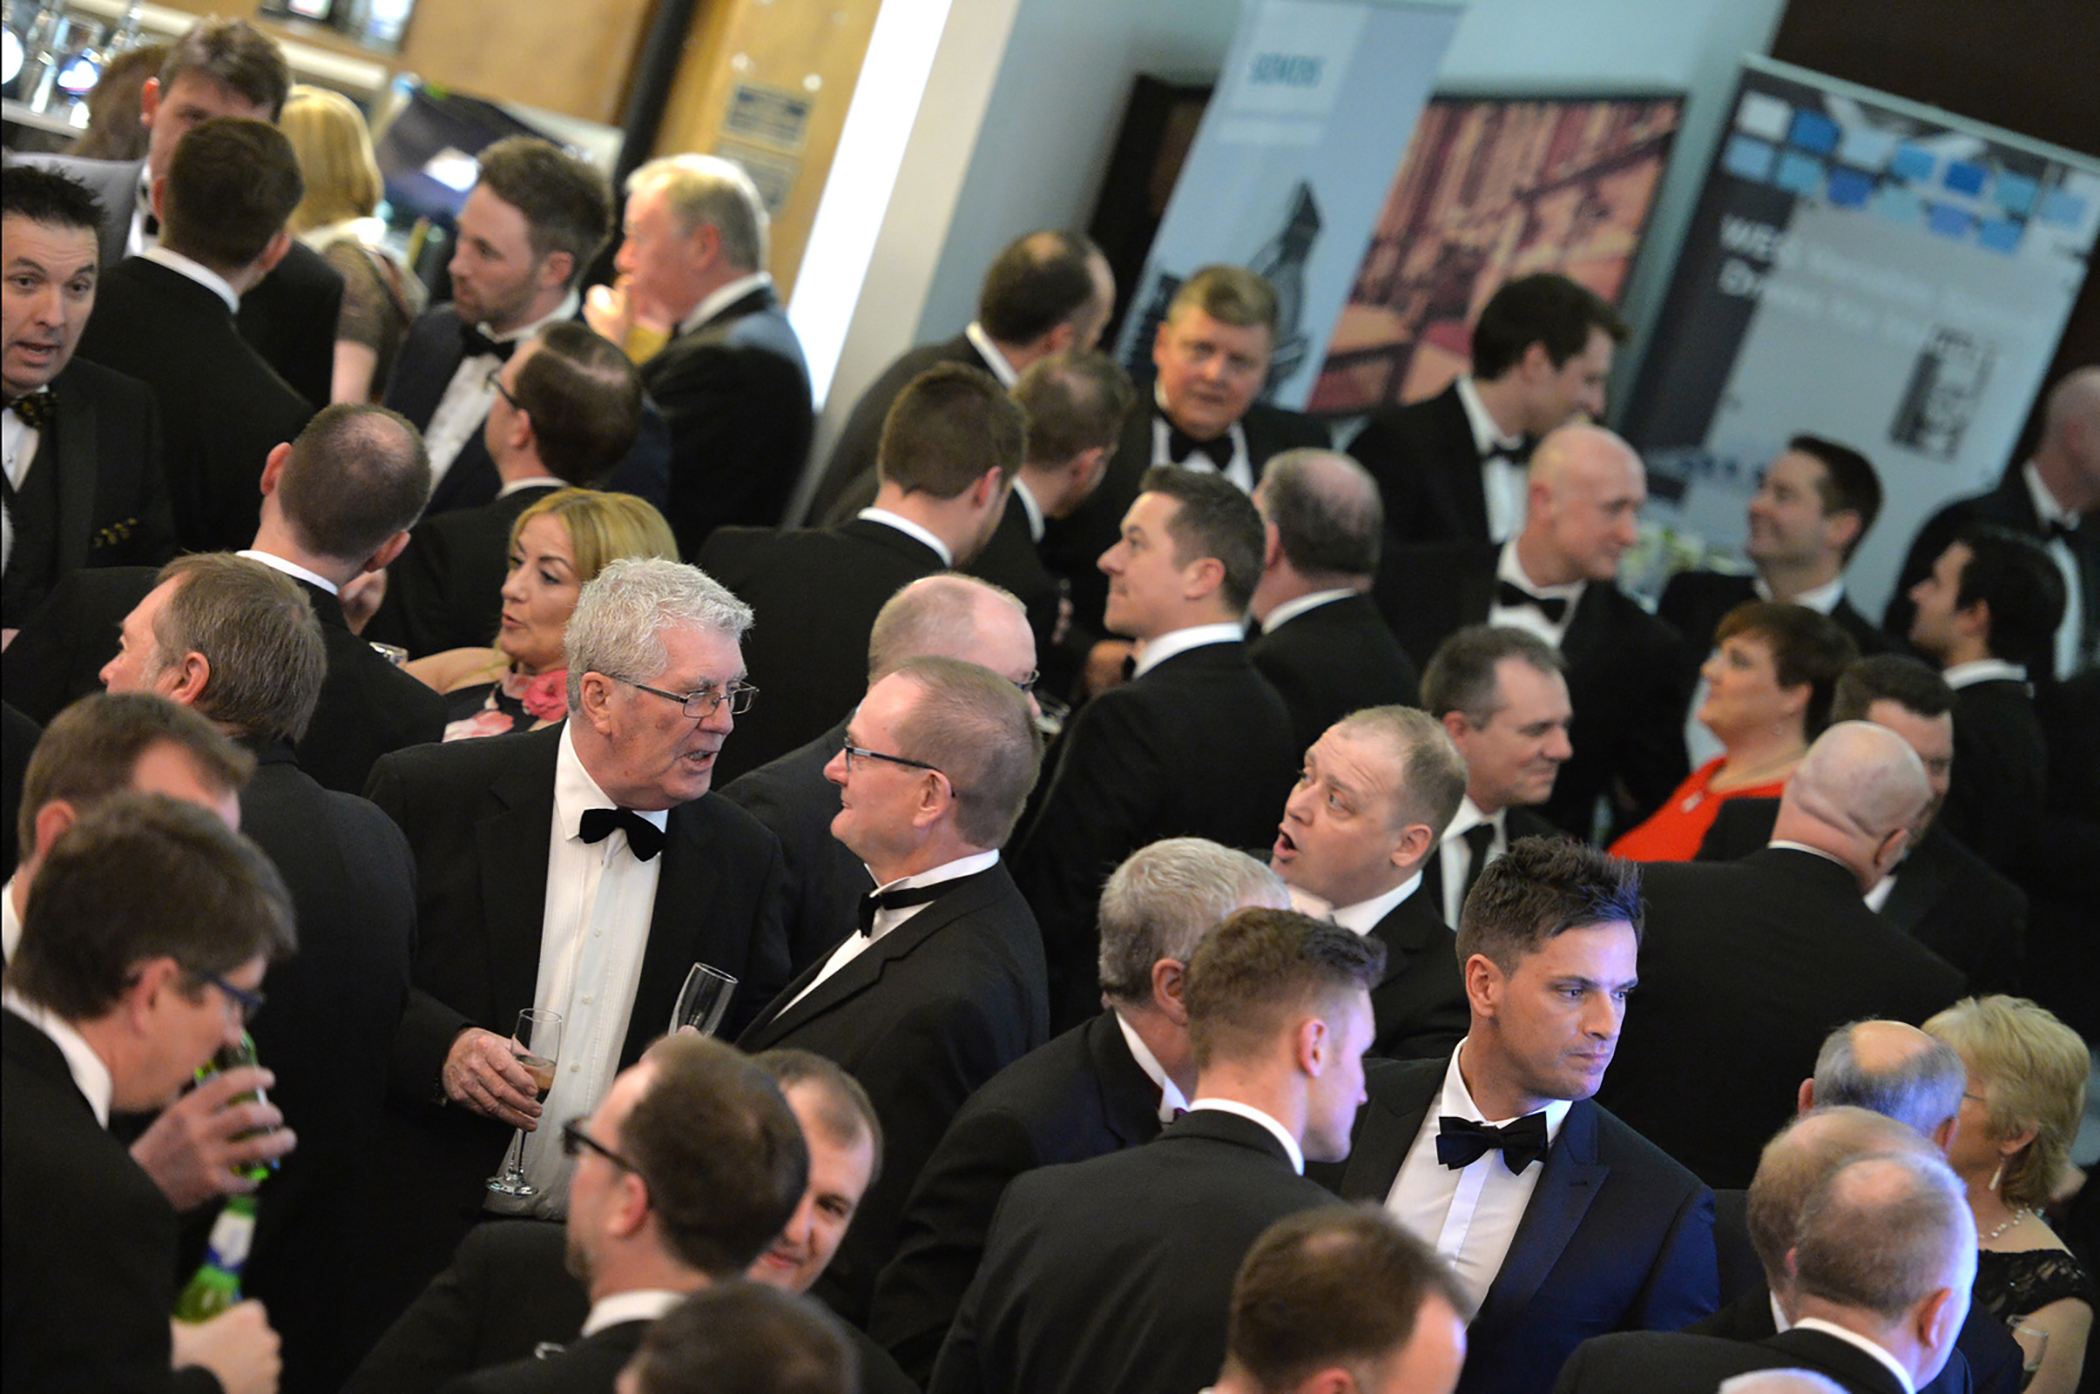 AEMT Awards attract significant industry support